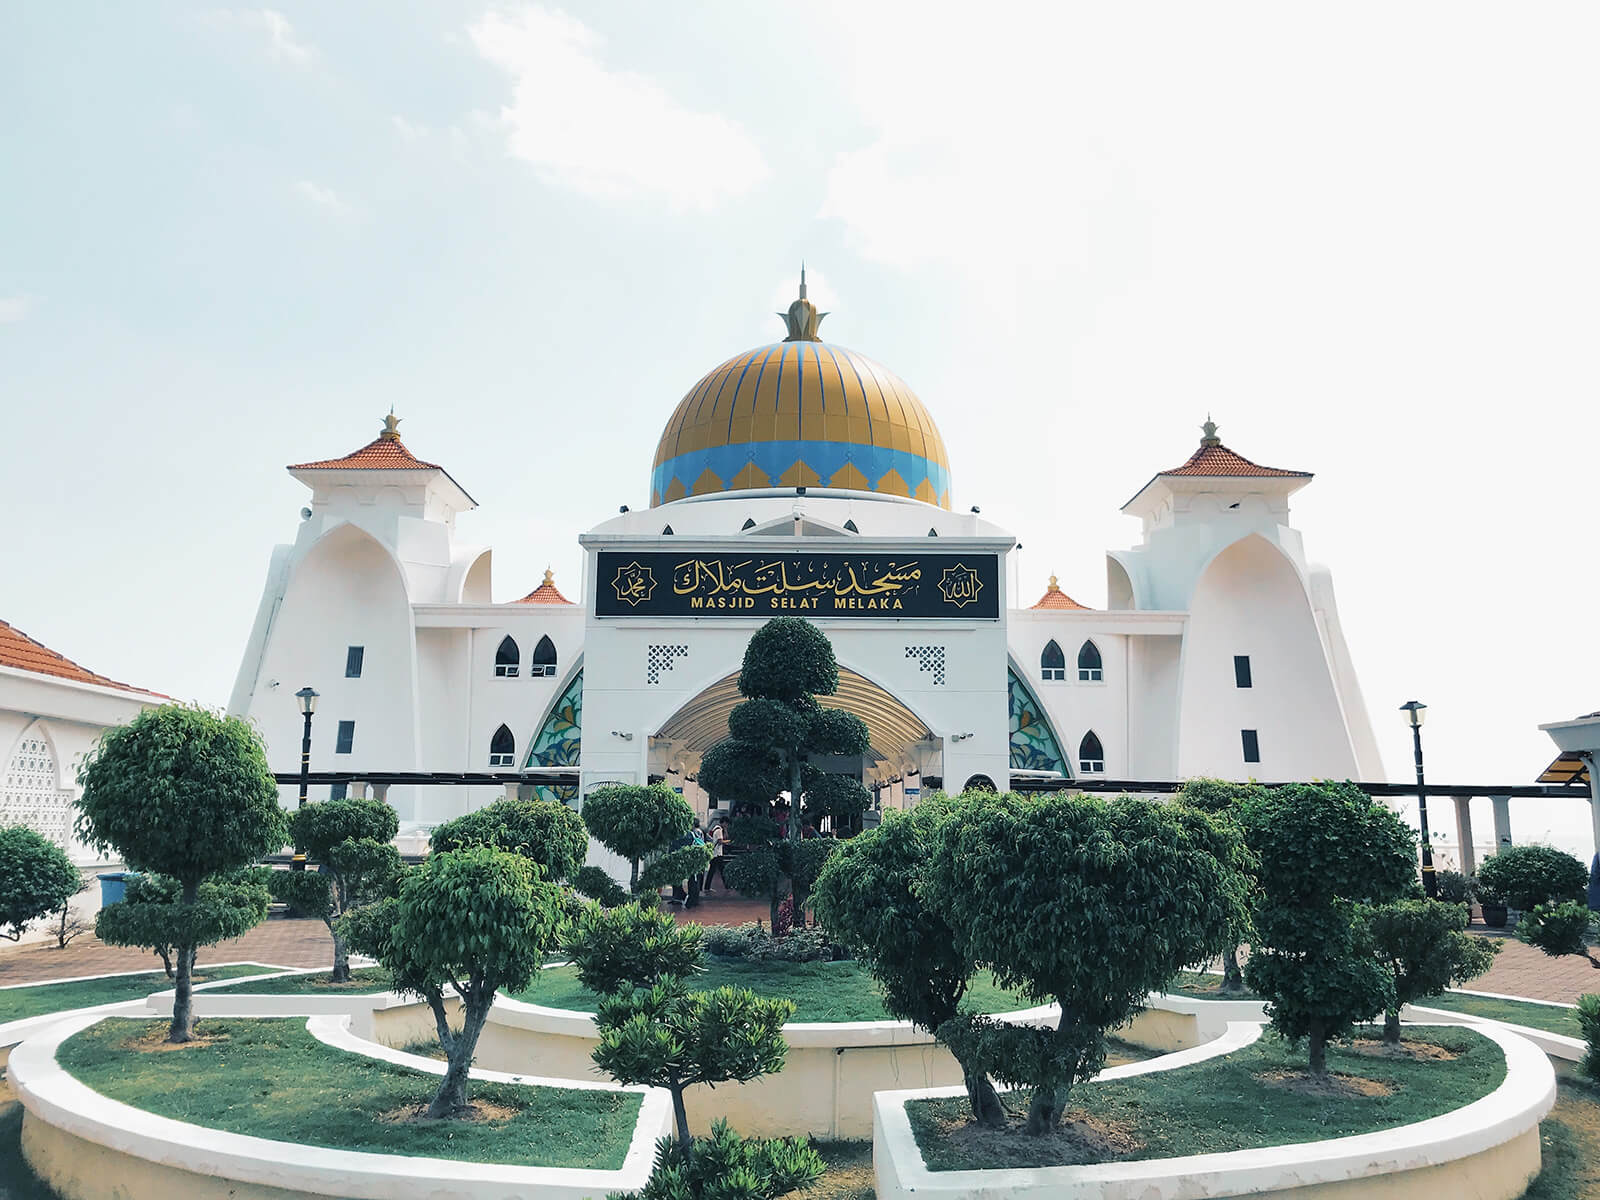 Postcards from Malacca 'The Historic State' Malaysia